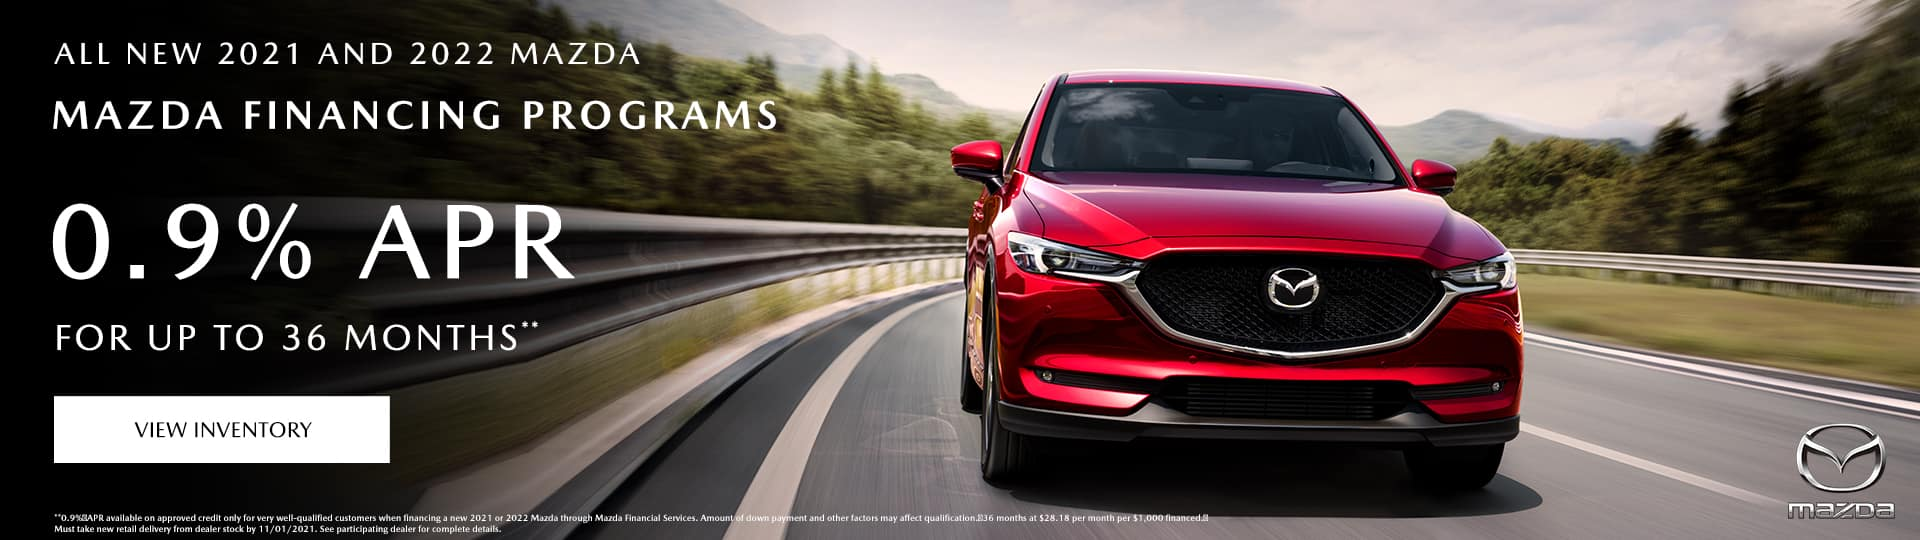 ALL NEW 2021 AND 2022 MAZDA FINANCING PROGRAM, 0.9% APR for up to 36 Months**